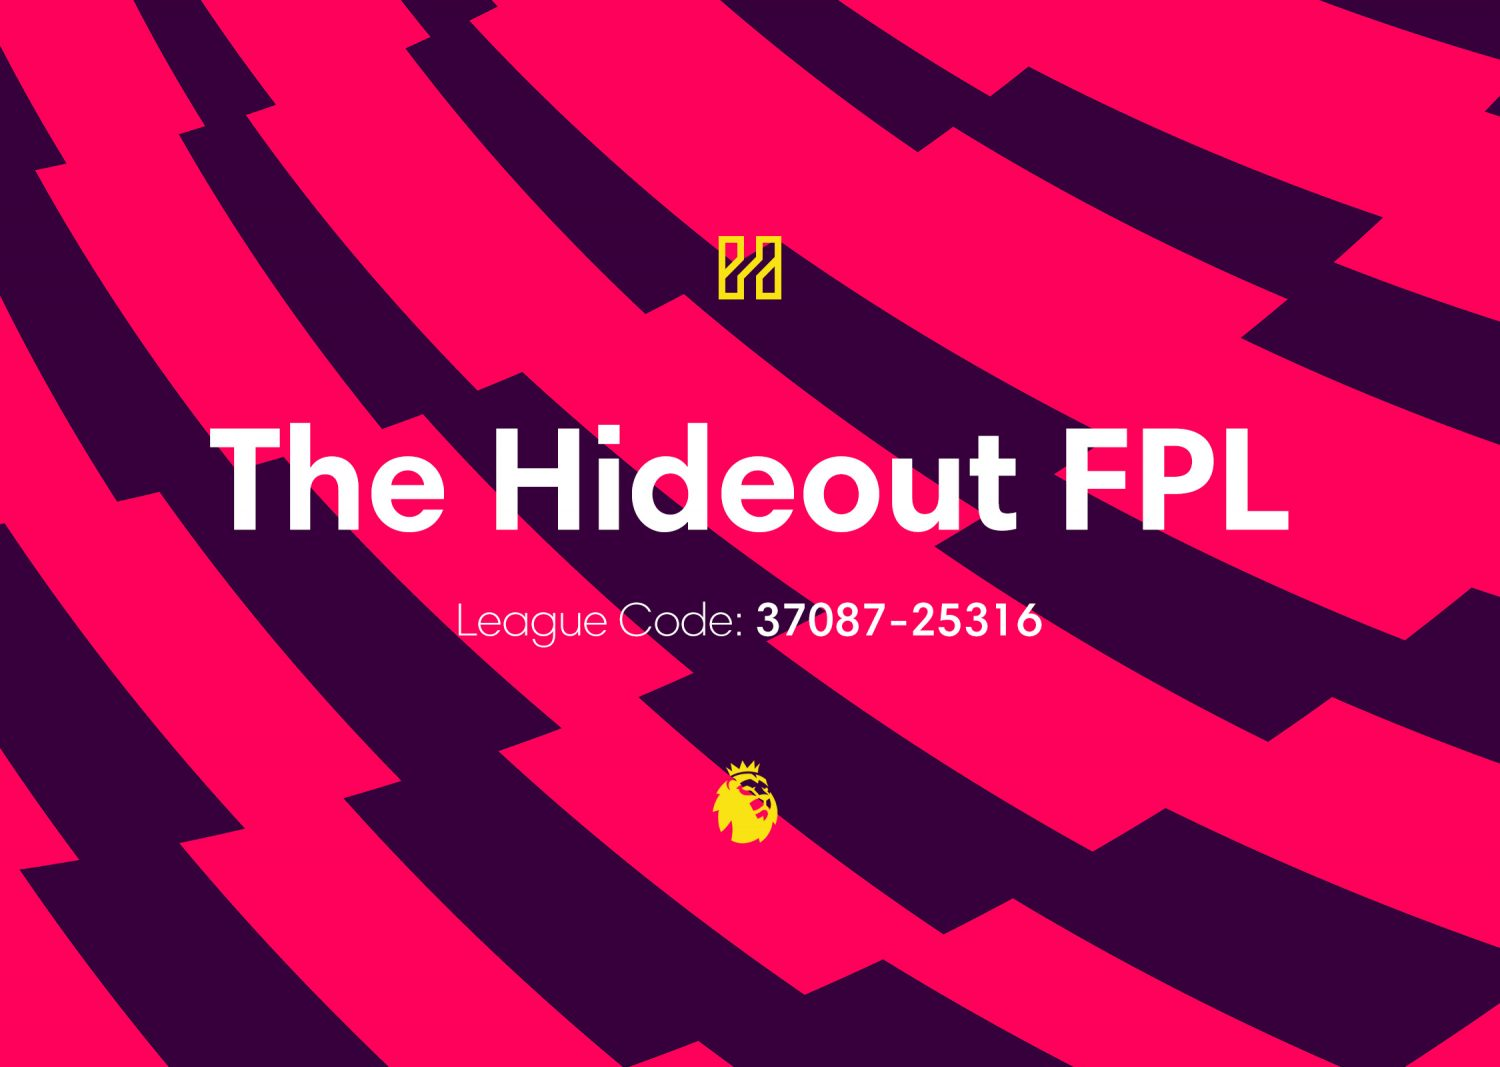 The Hideout FPL